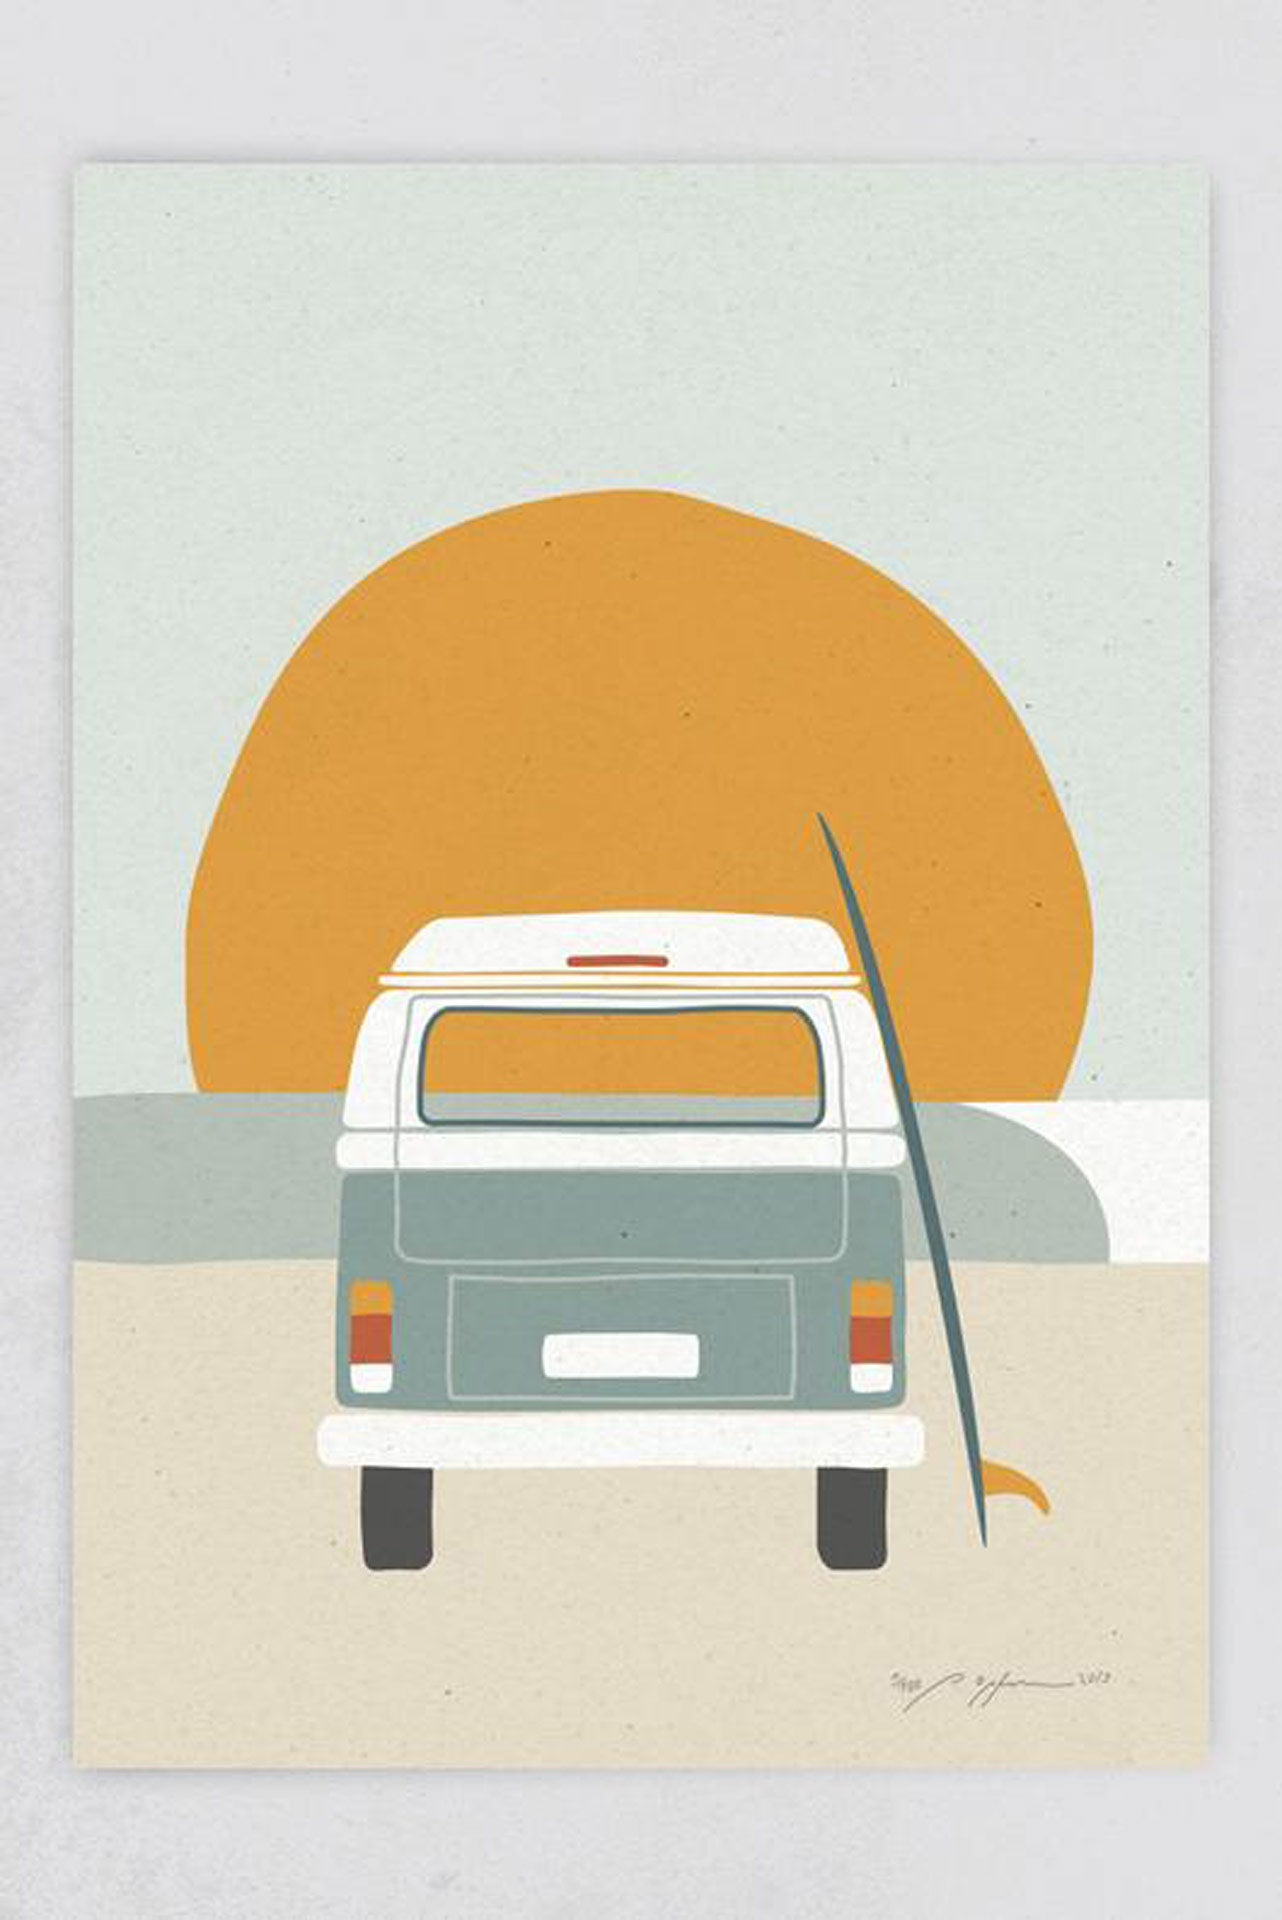 Surf Art Print BullI am Strand Pia Opfermann